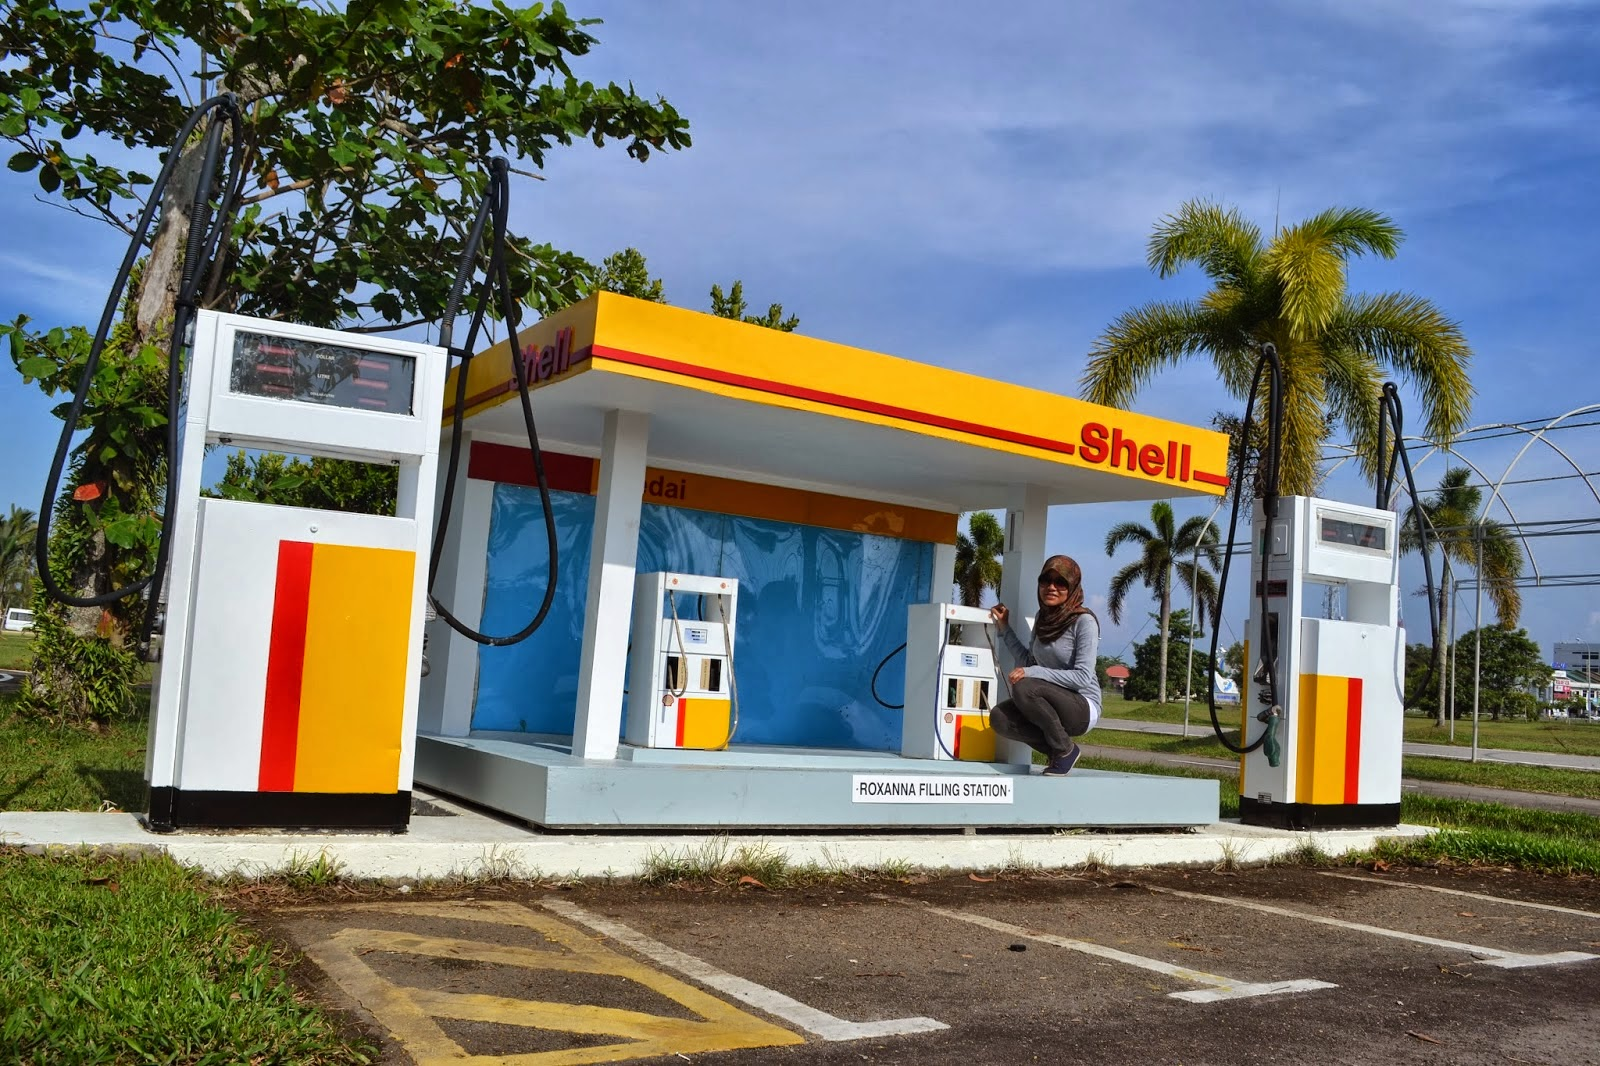 Shell - first oil company in Brunei